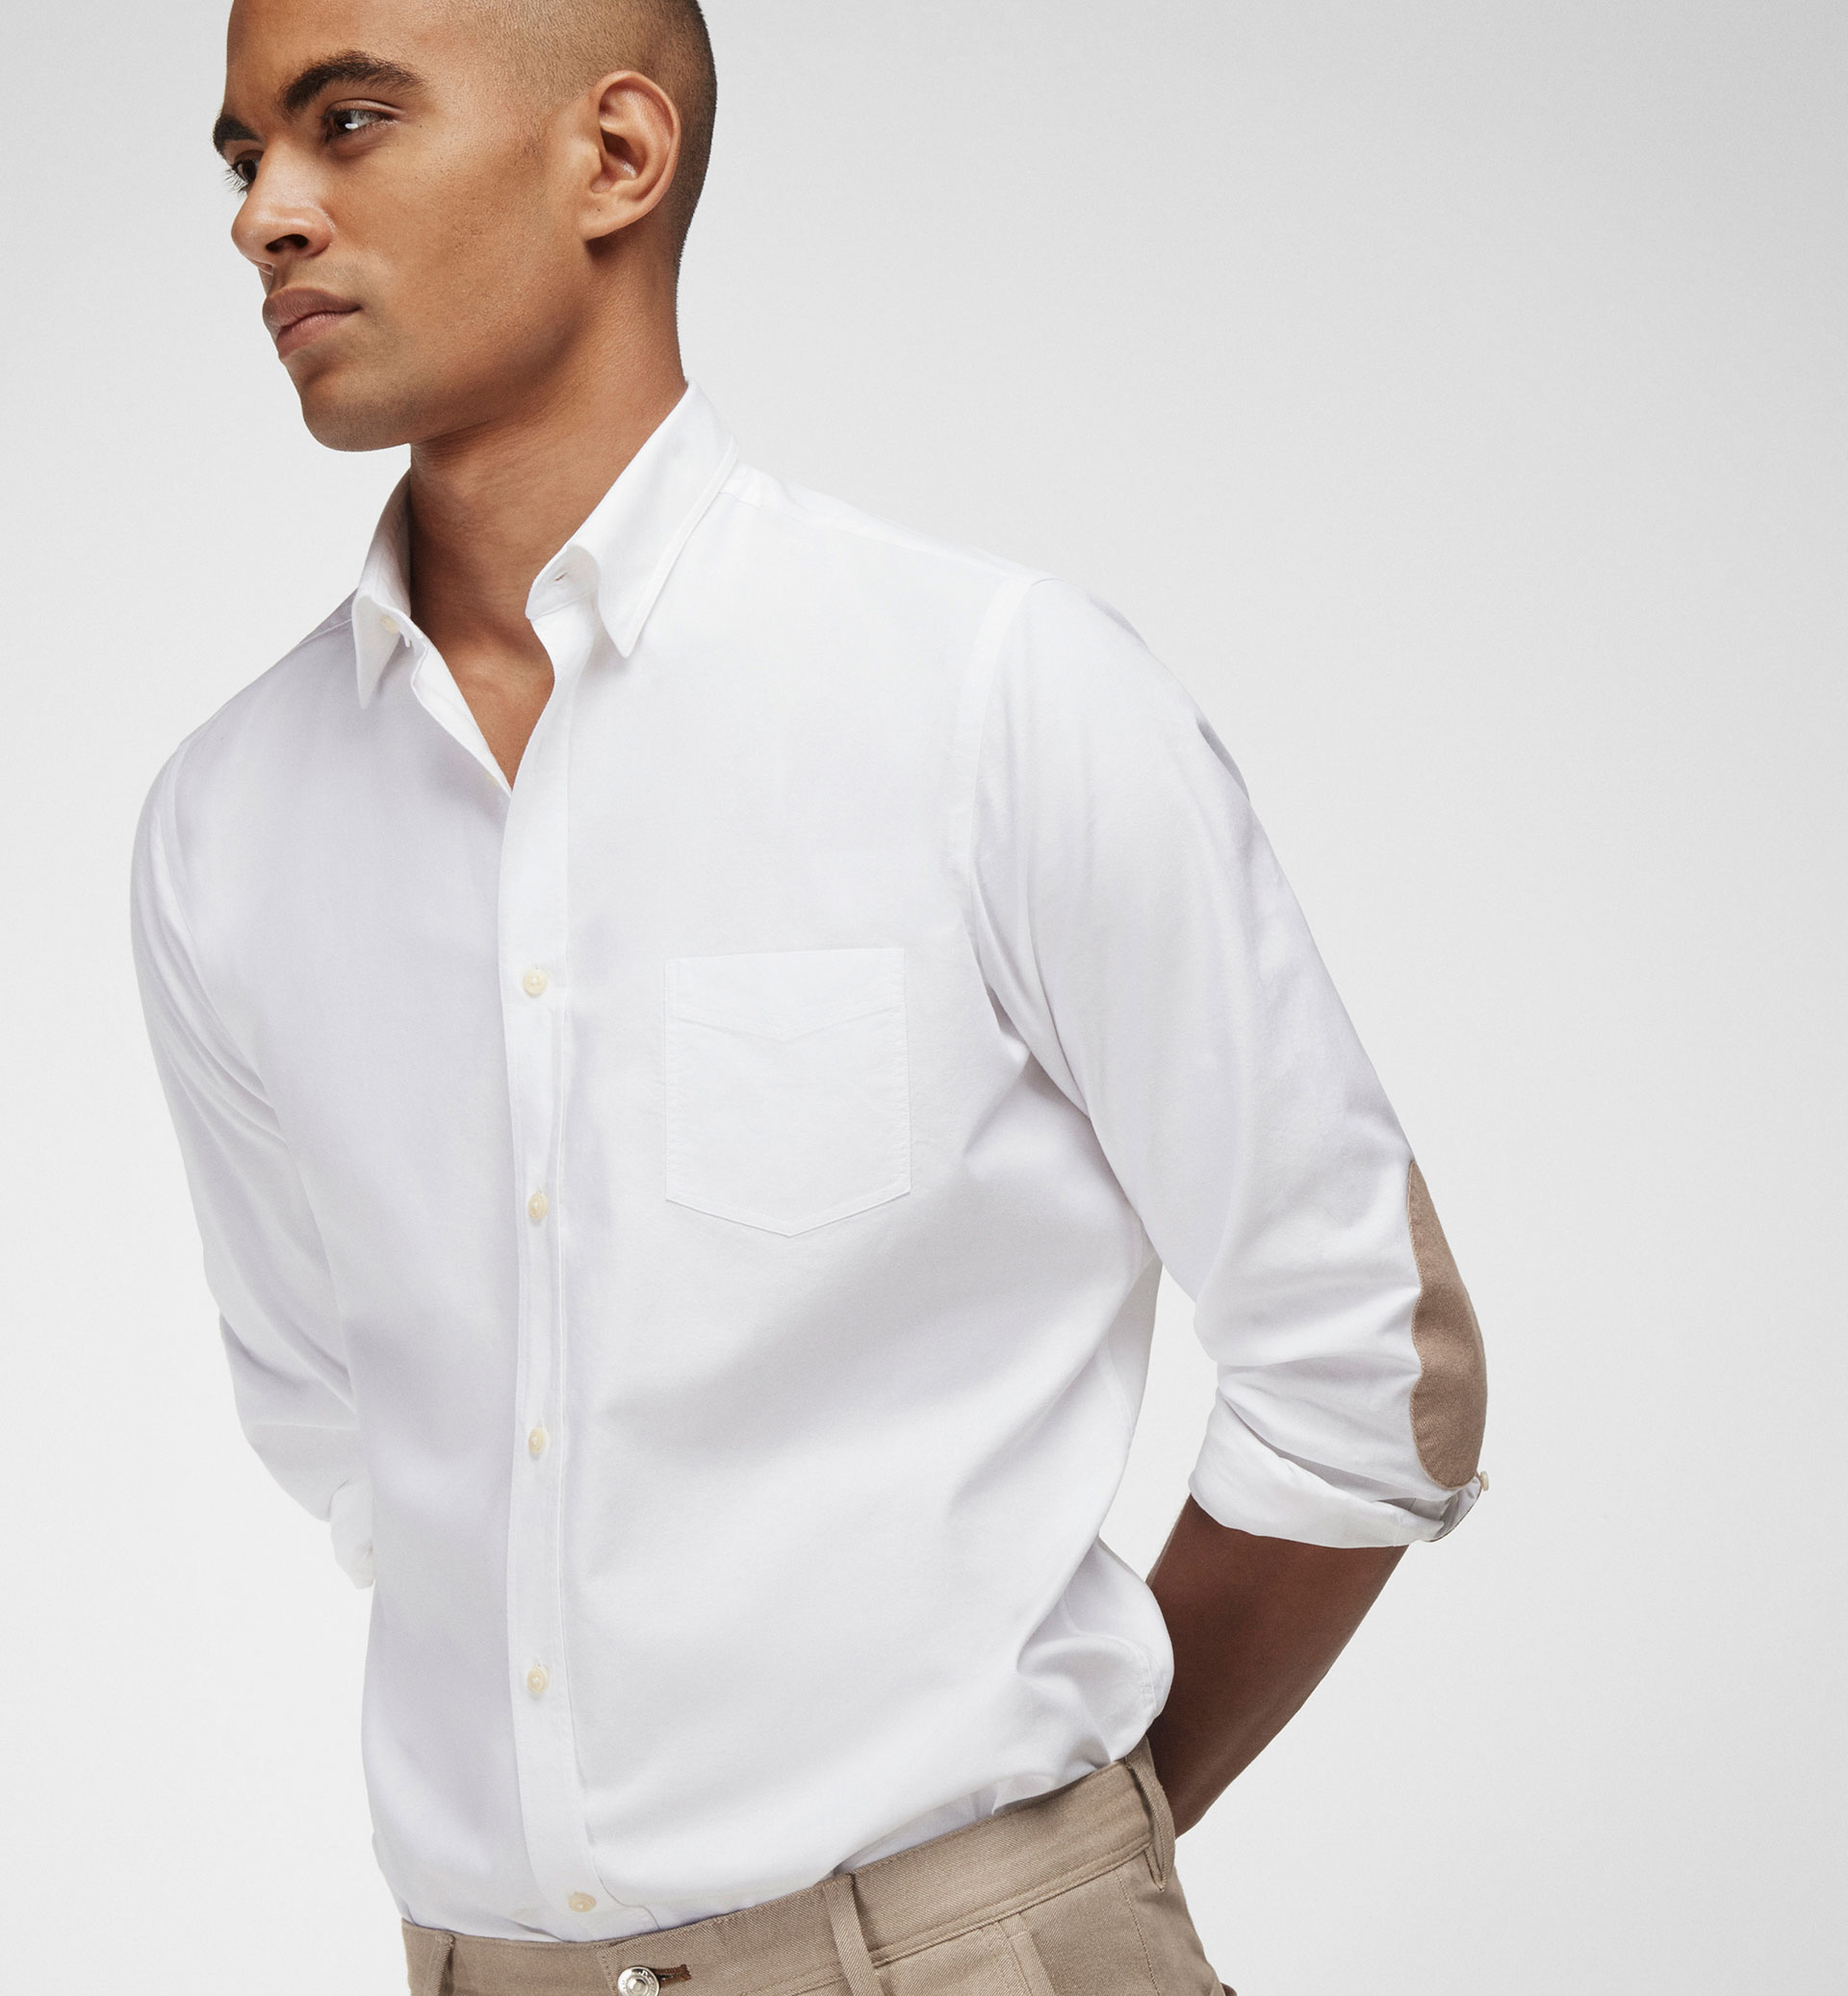 WHITE SLIM FIT SHIRT WITH BEIGE ELBOW PATCHES